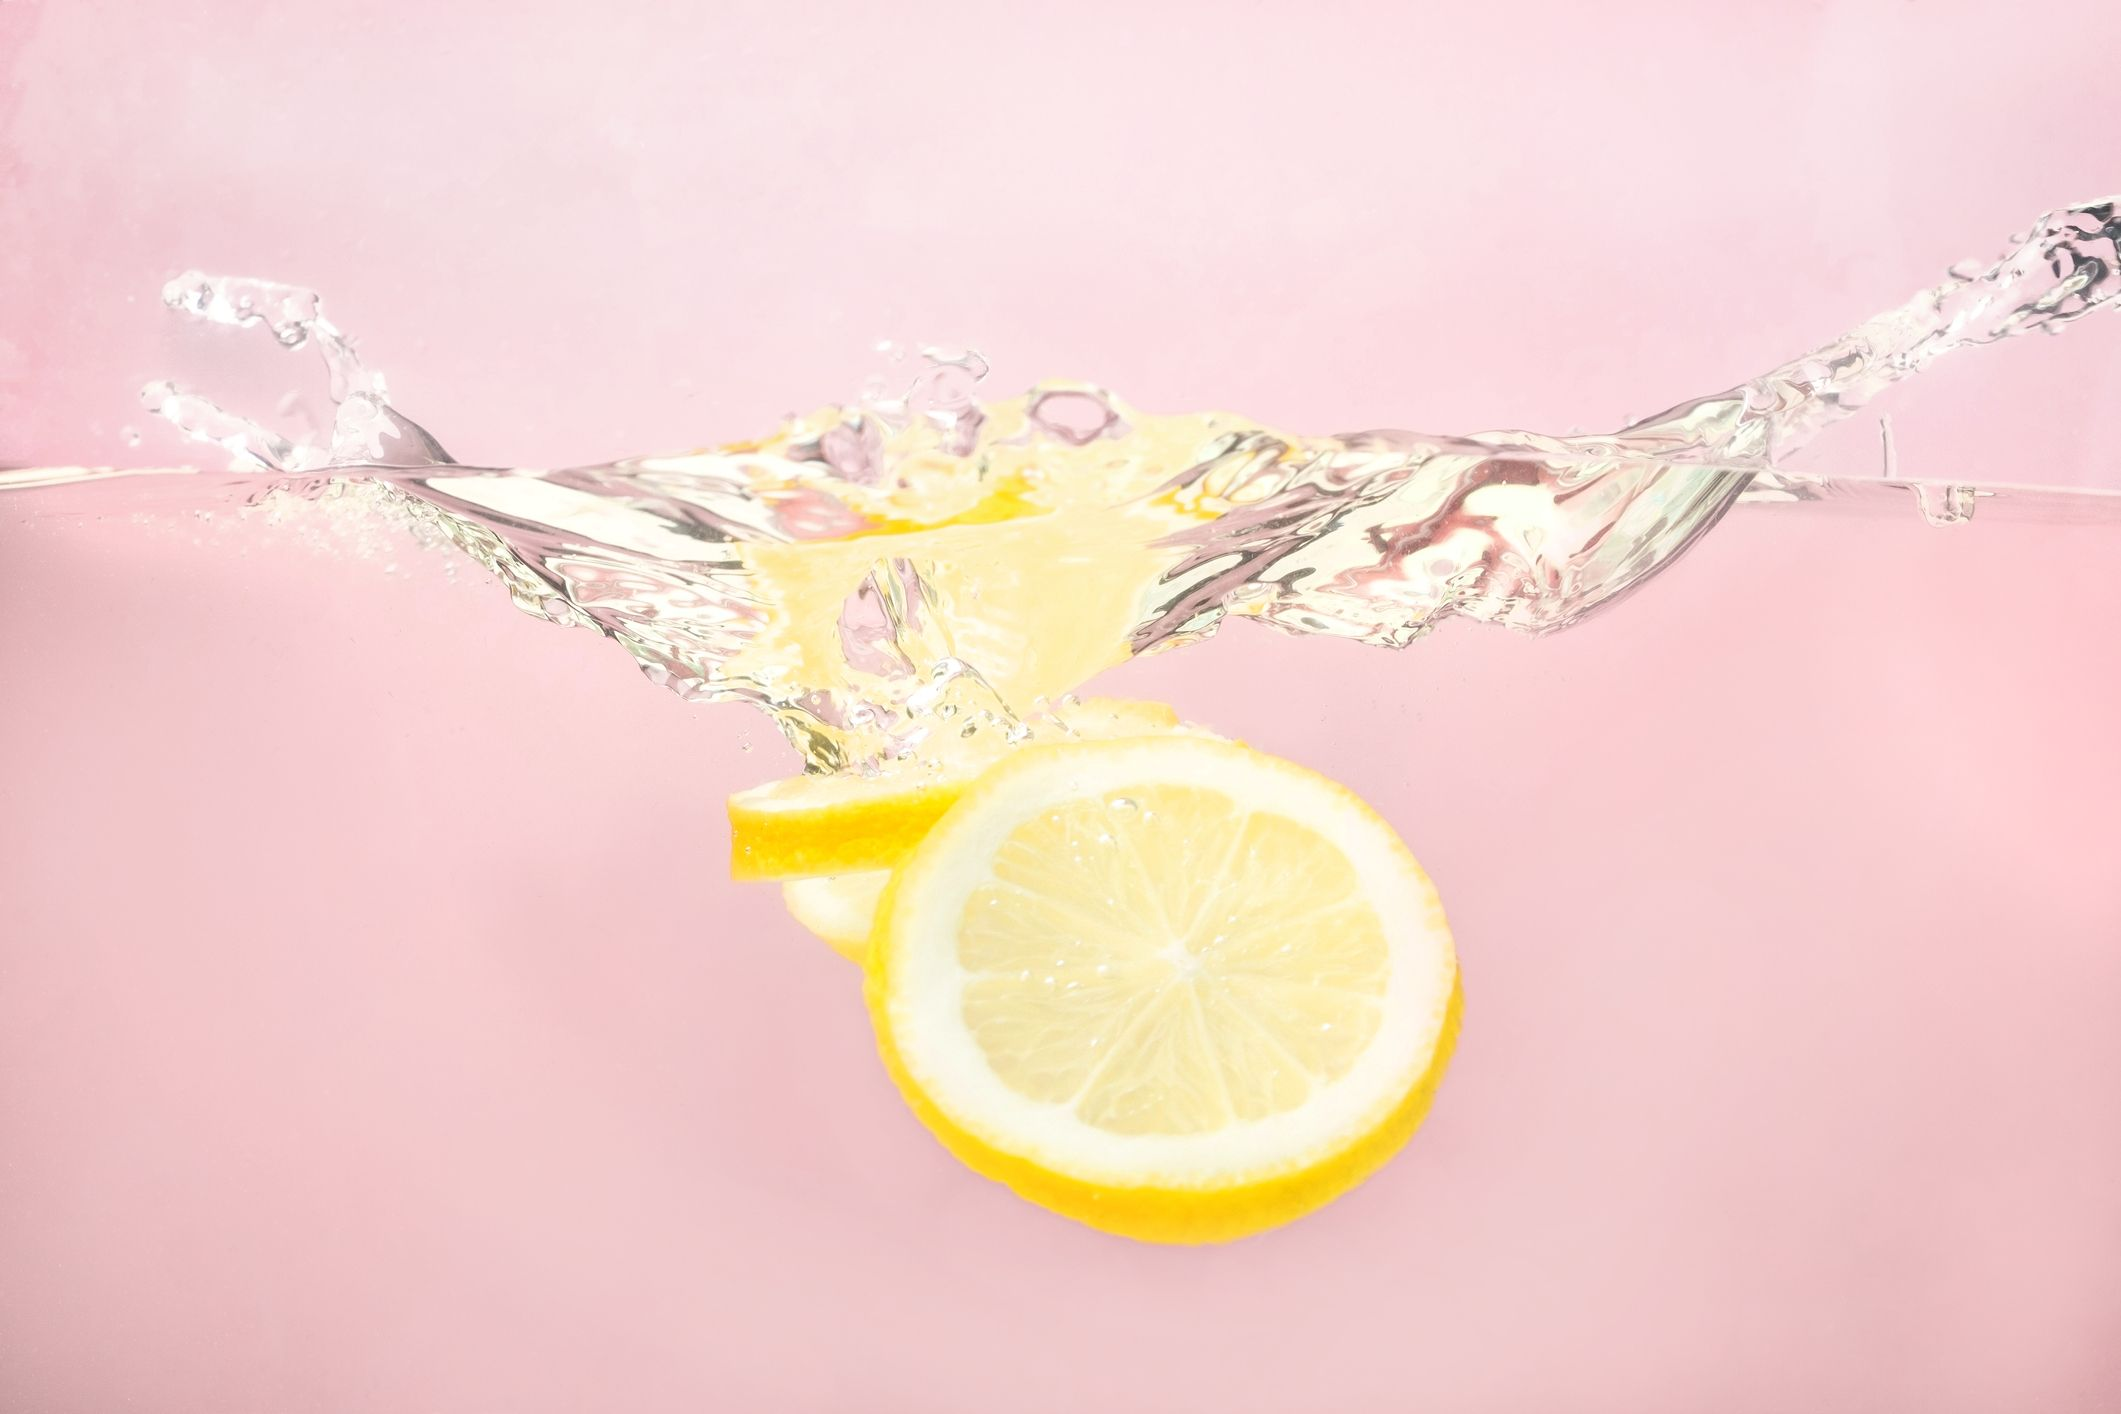 7 Benefits of Drinking Lemon Water, According to a Dietician